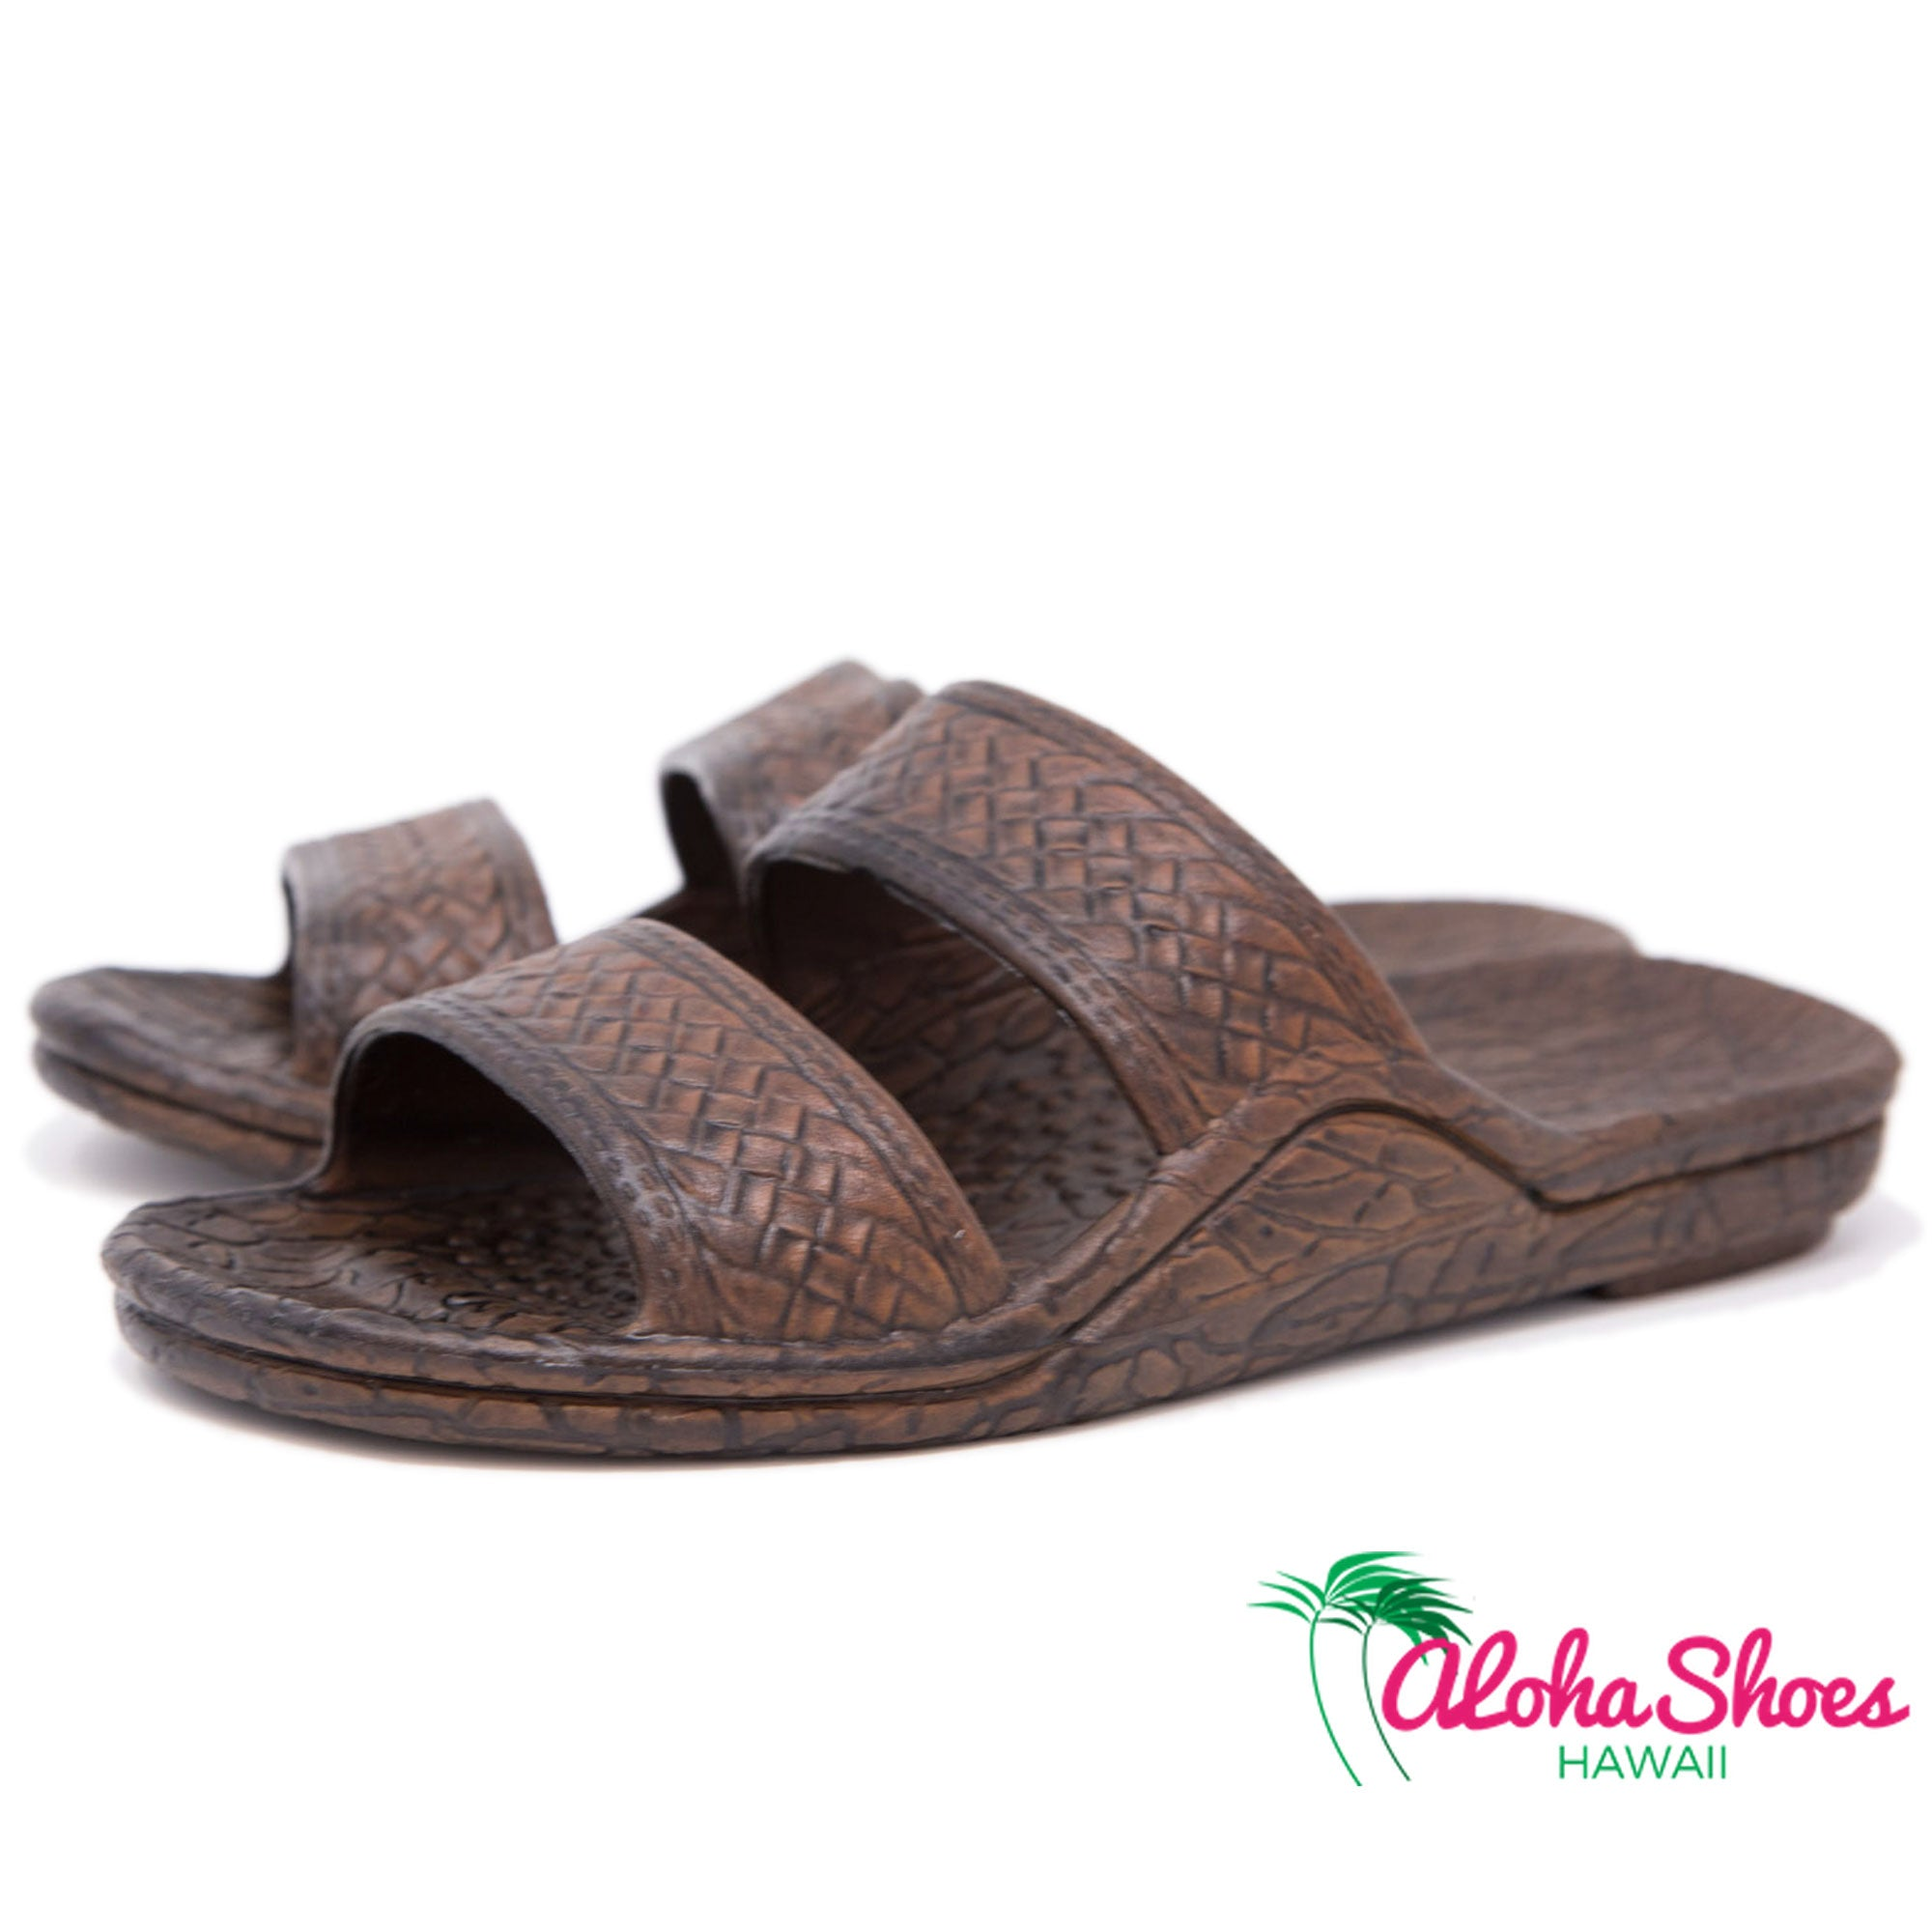 Aloha Shoes Jesus Sandals From Hawaii